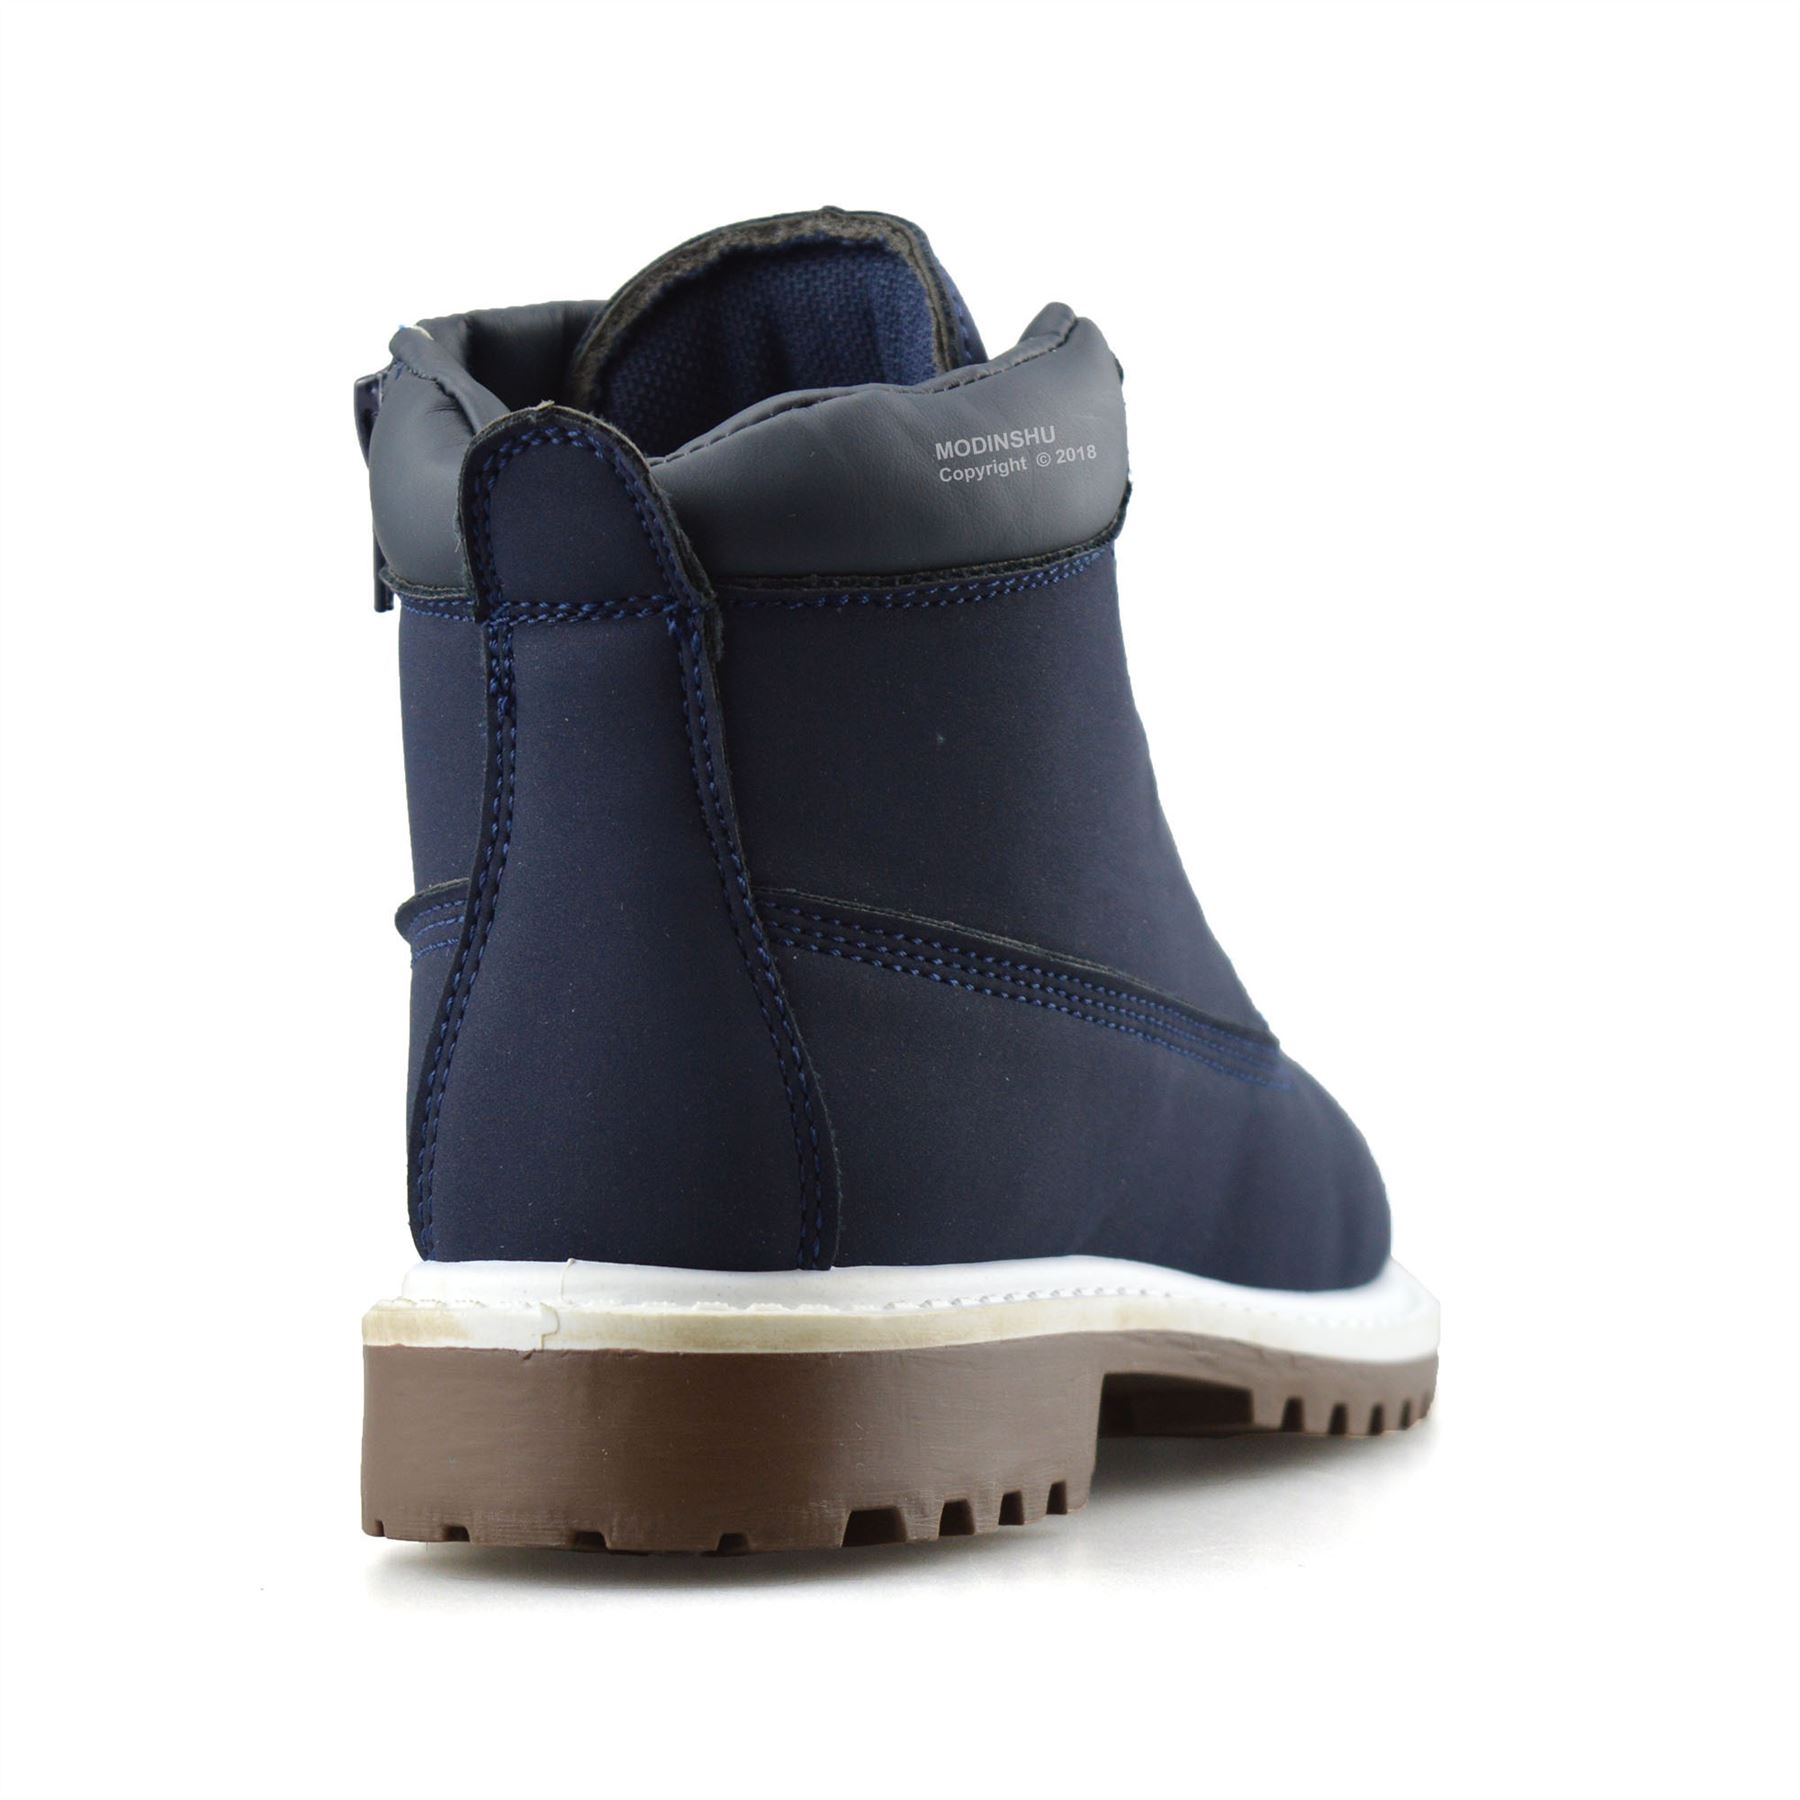 Boys-Kids-New-Casual-Zip-Lace-Up-Winter-Walking-Ankle-Boots-Trainers-Shoes-Size thumbnail 14